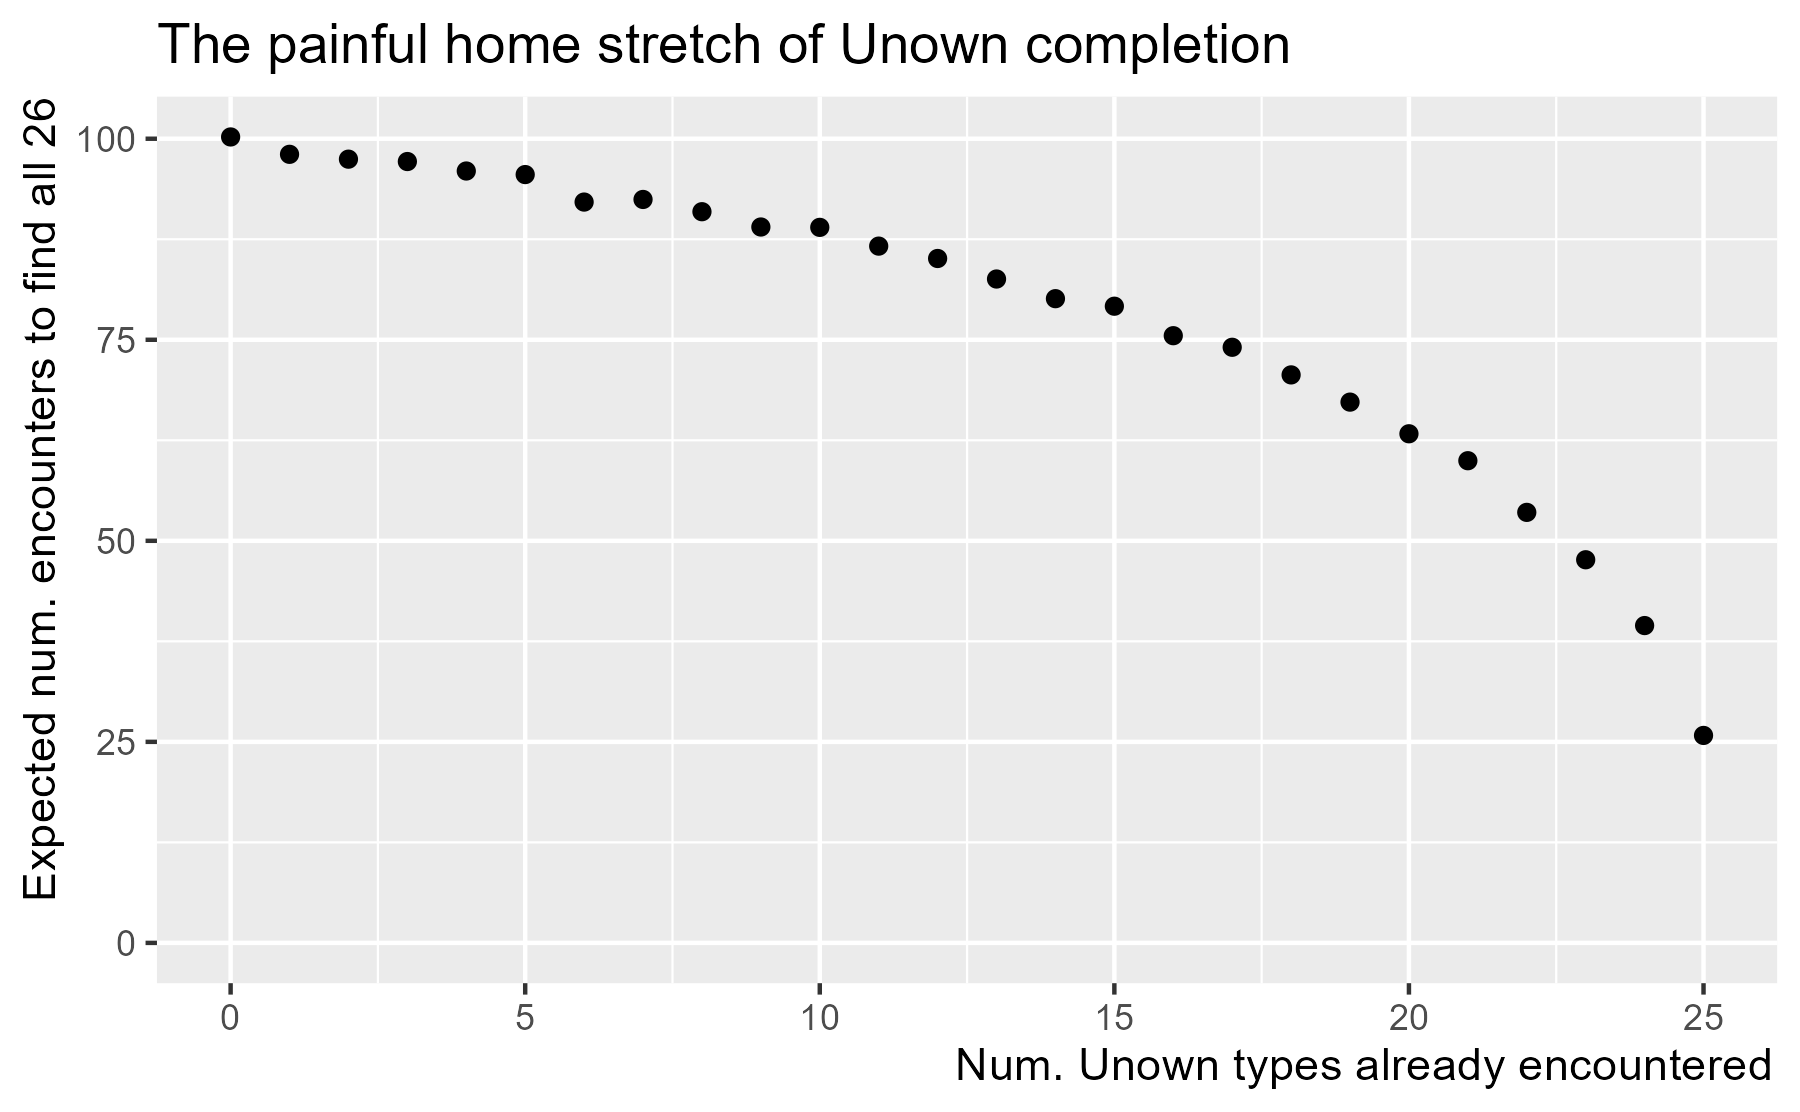 The painful home stretch of Unown completion